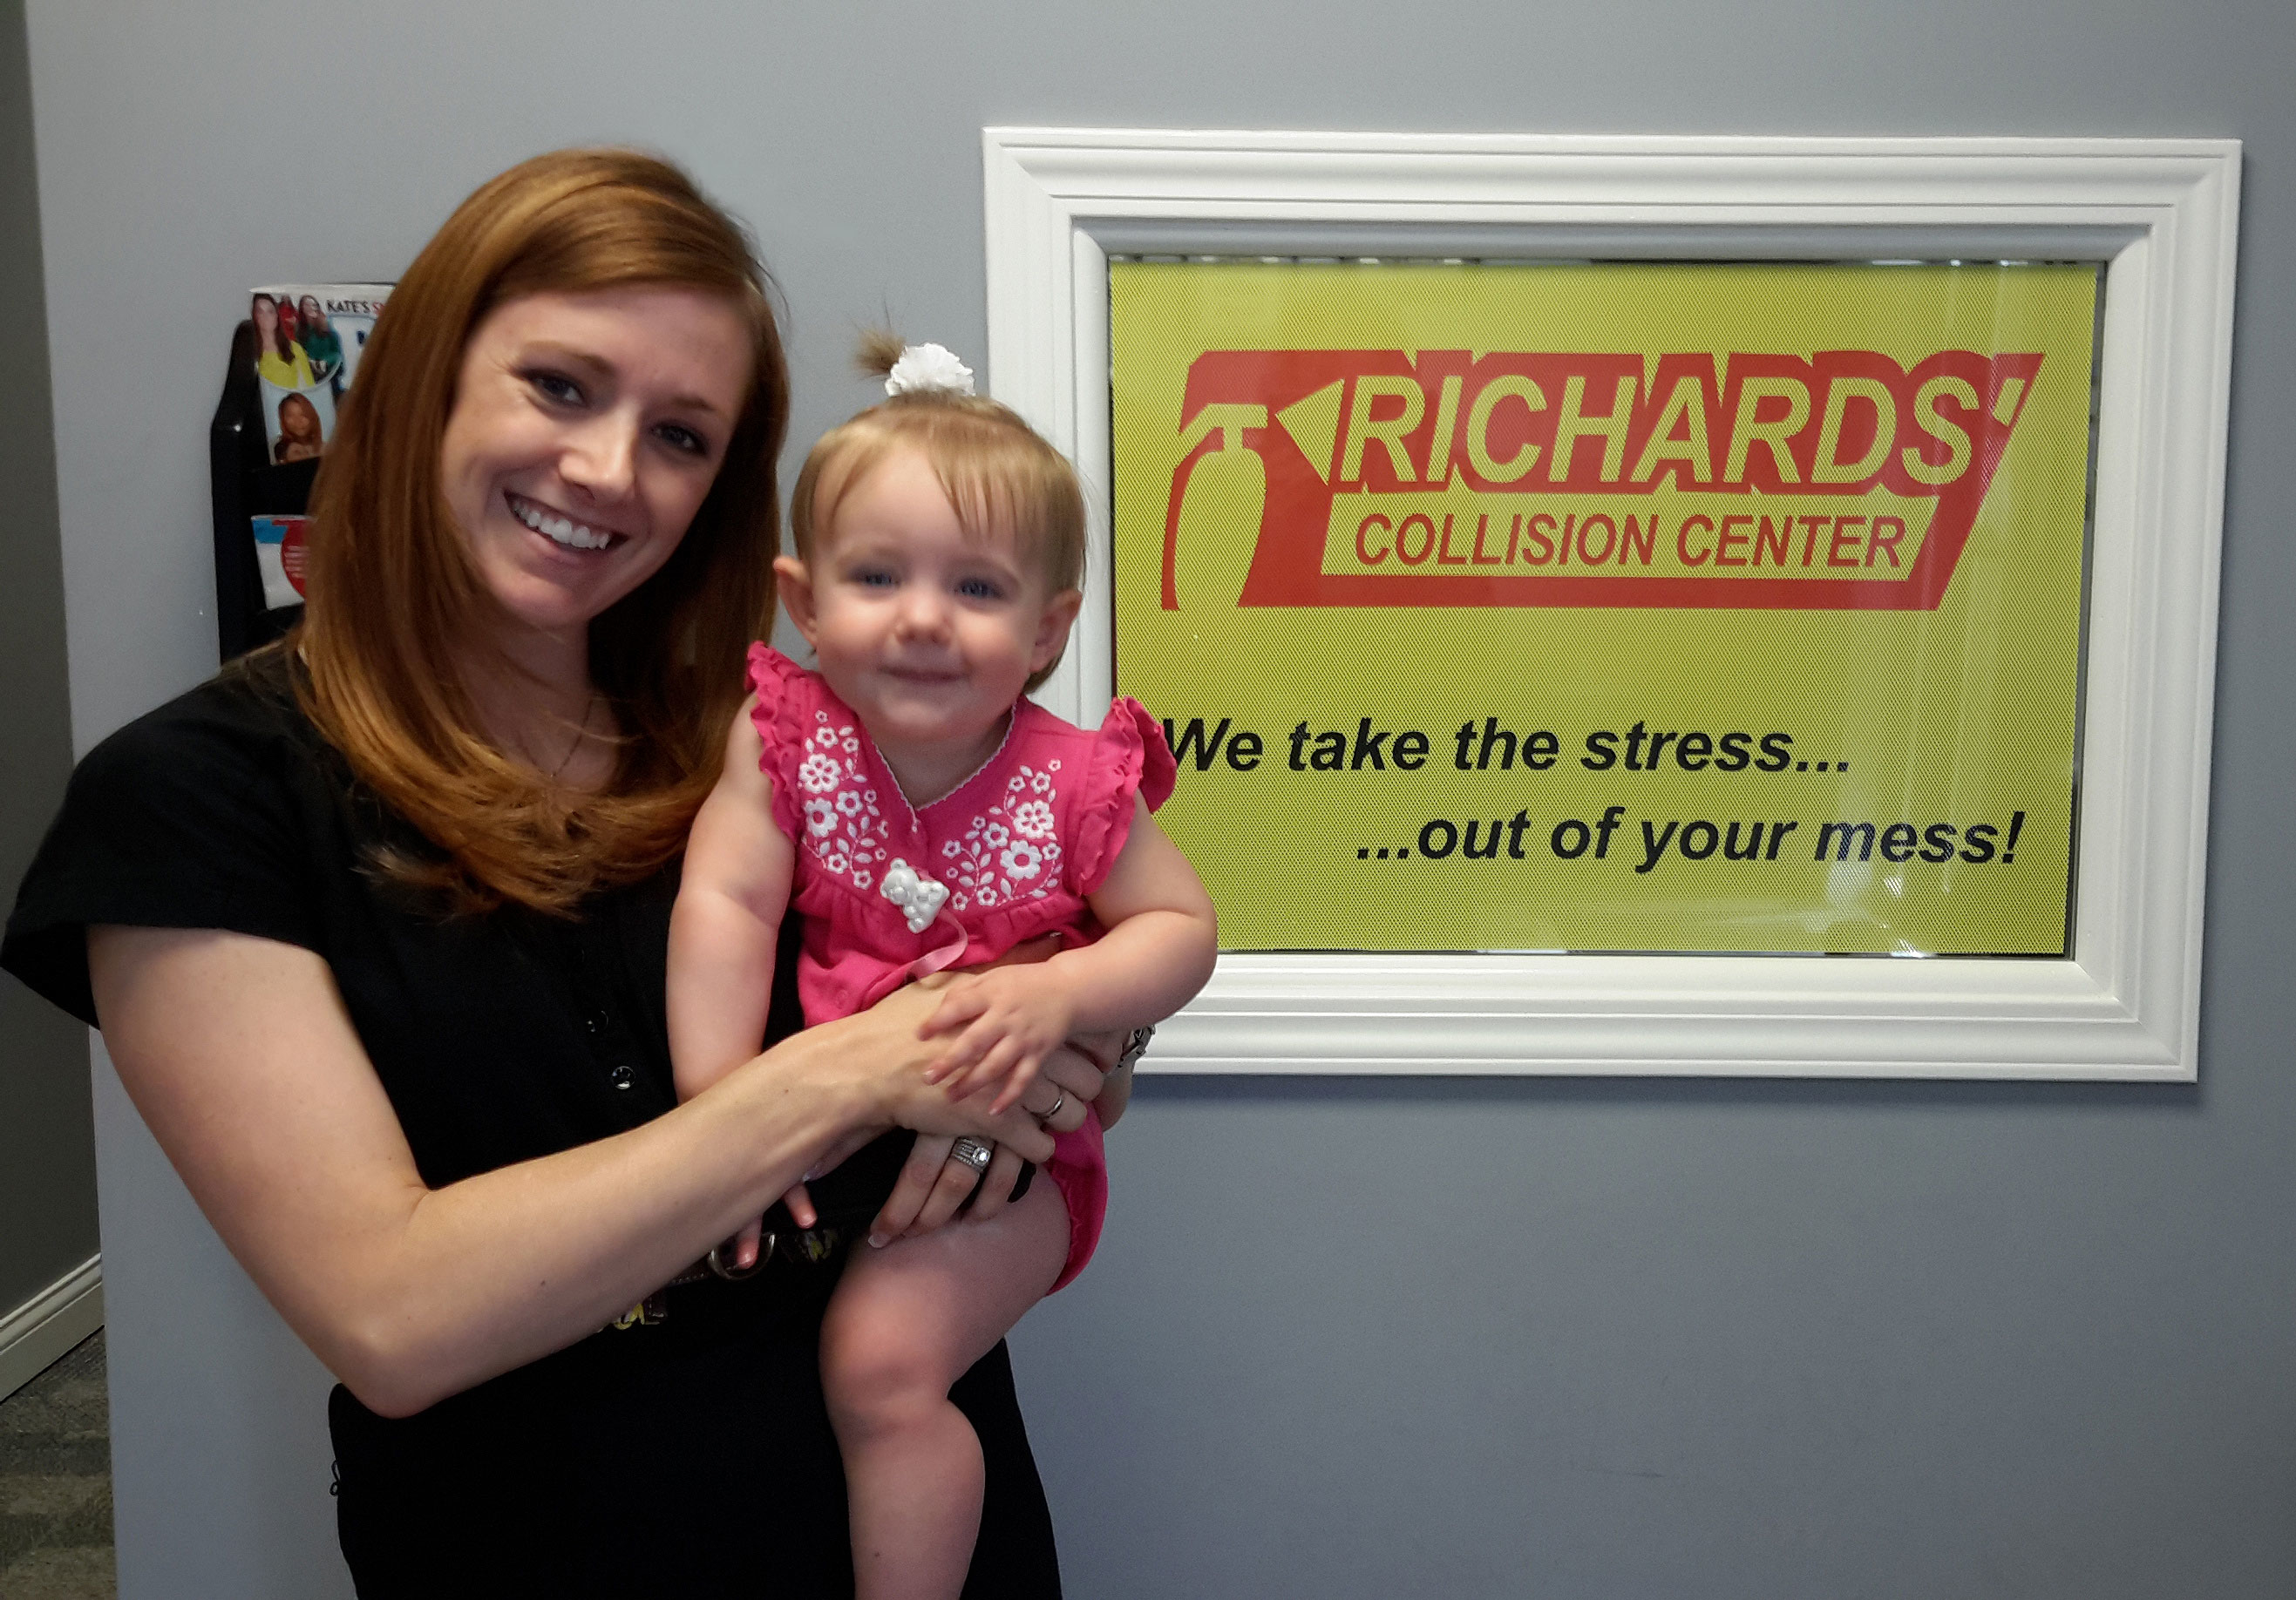 Richards' Collision Center